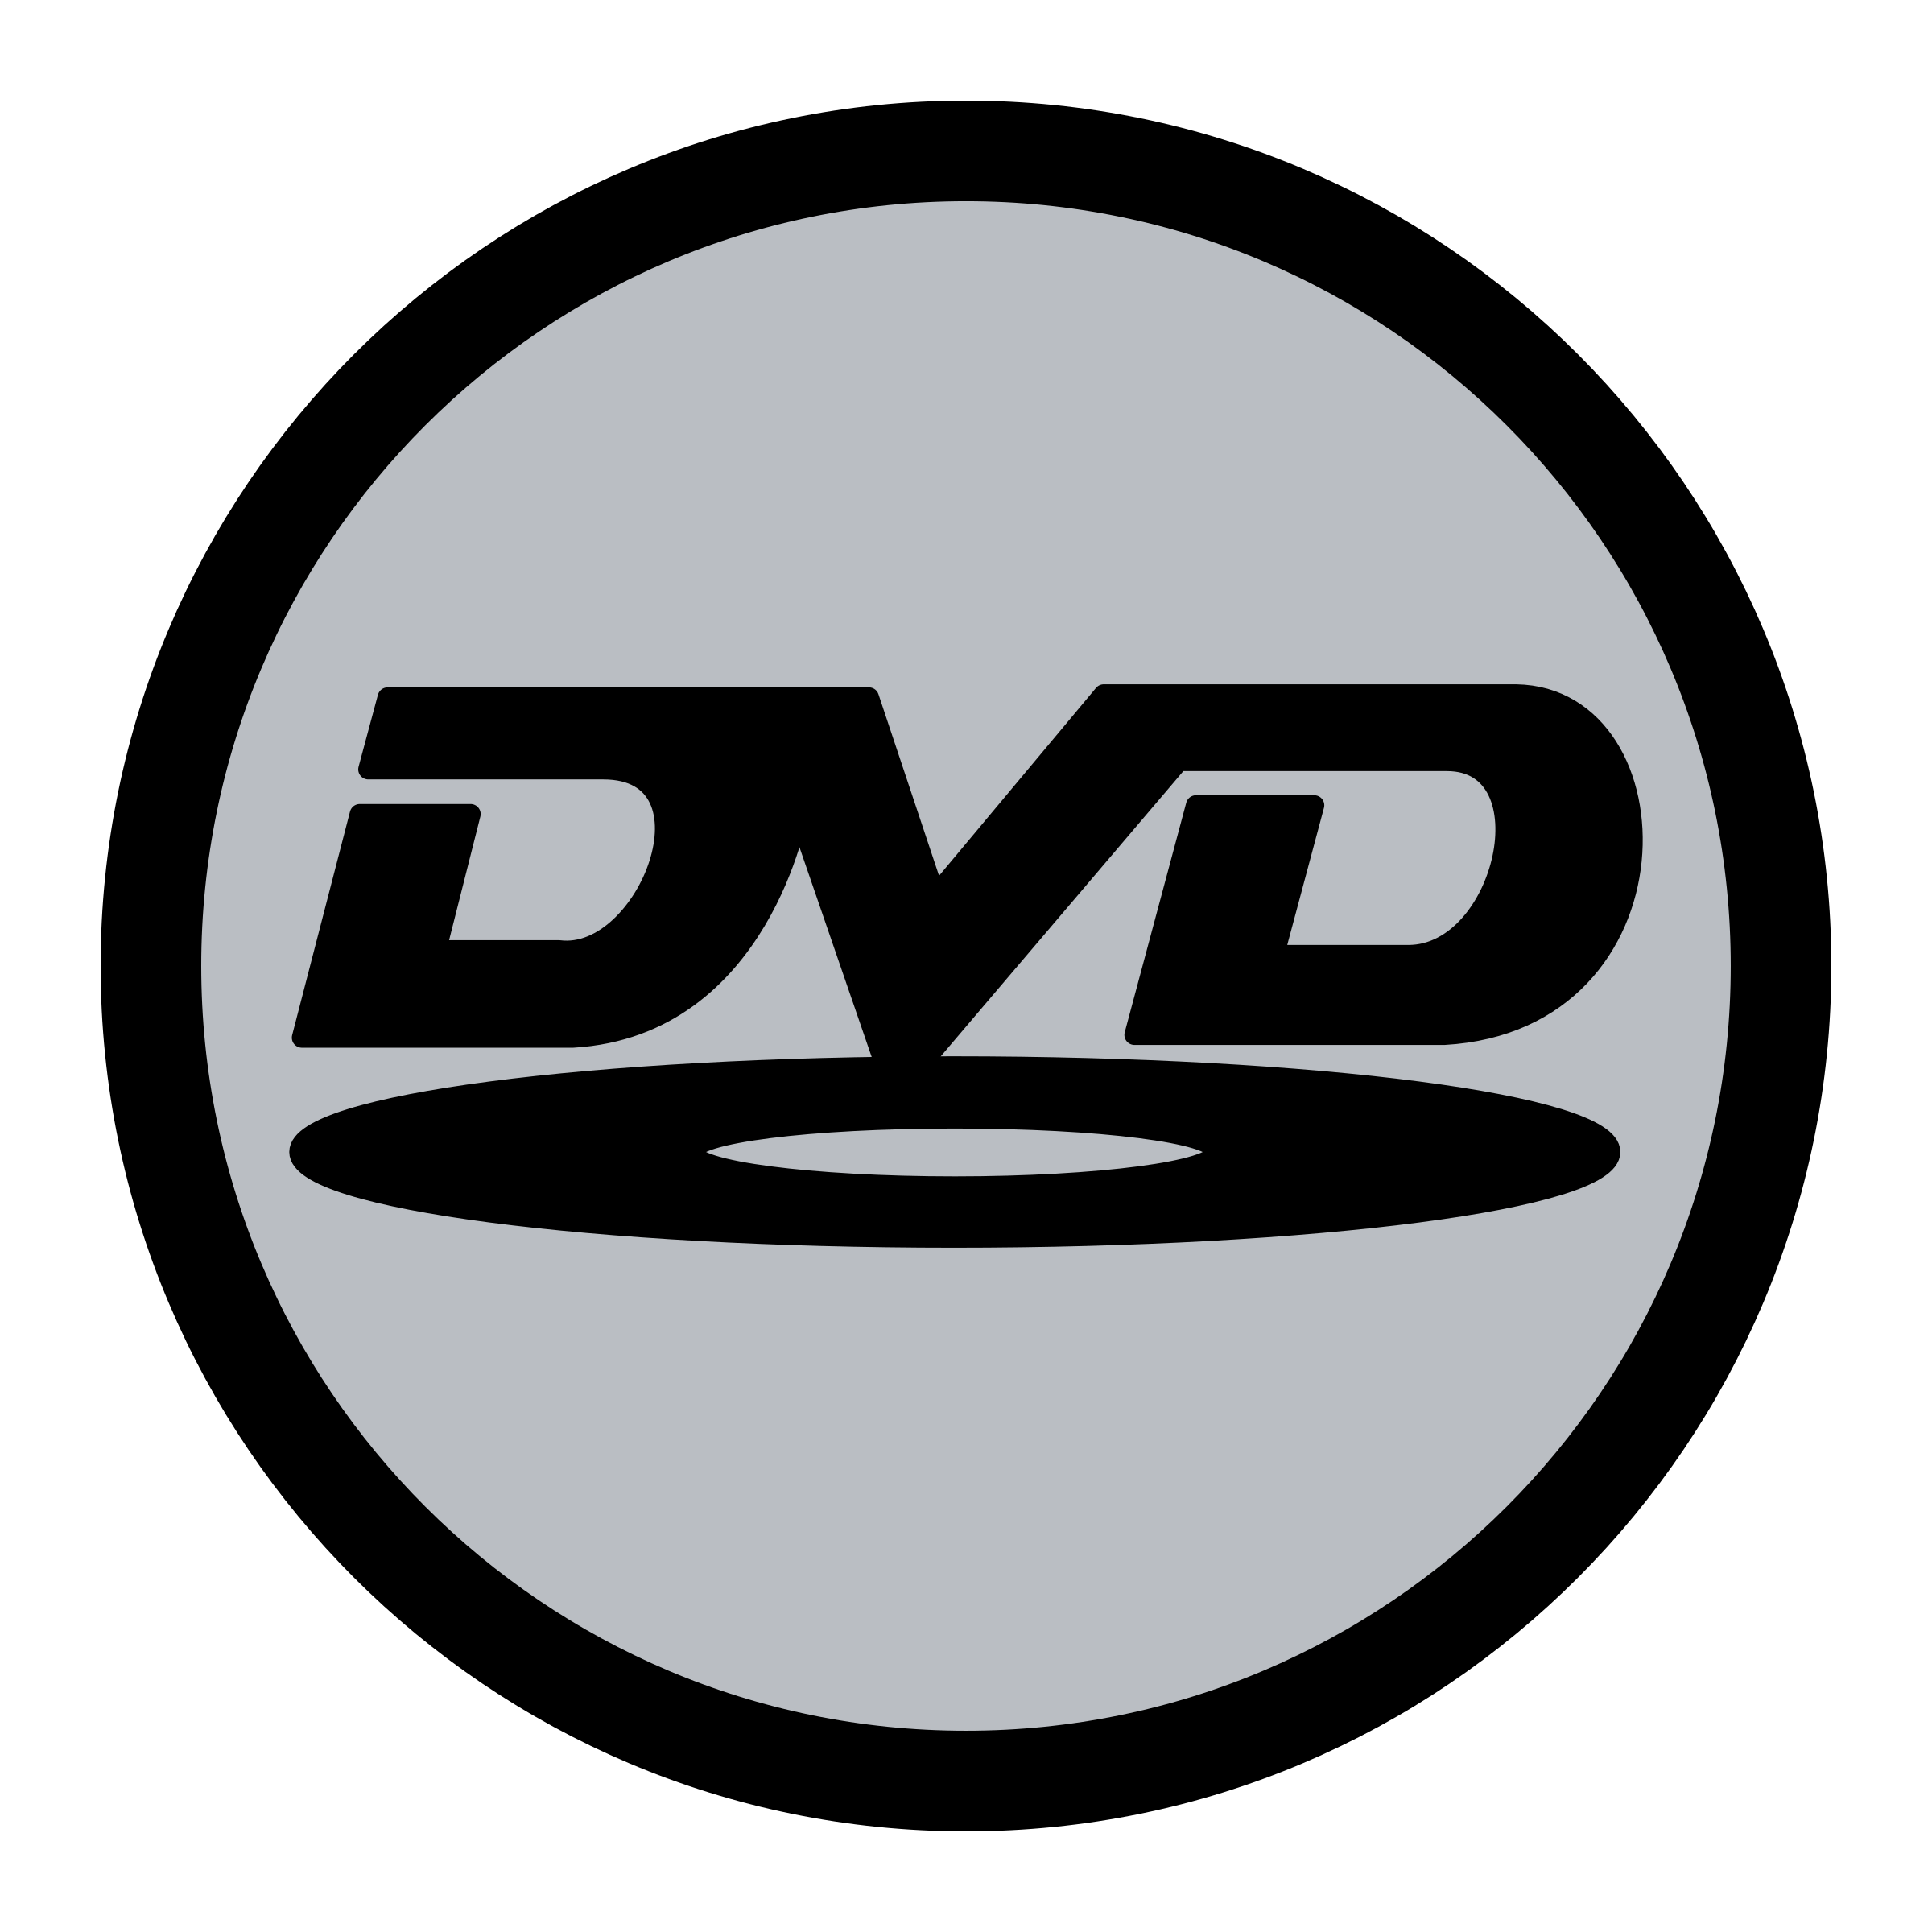 primary dvd mount by dannya